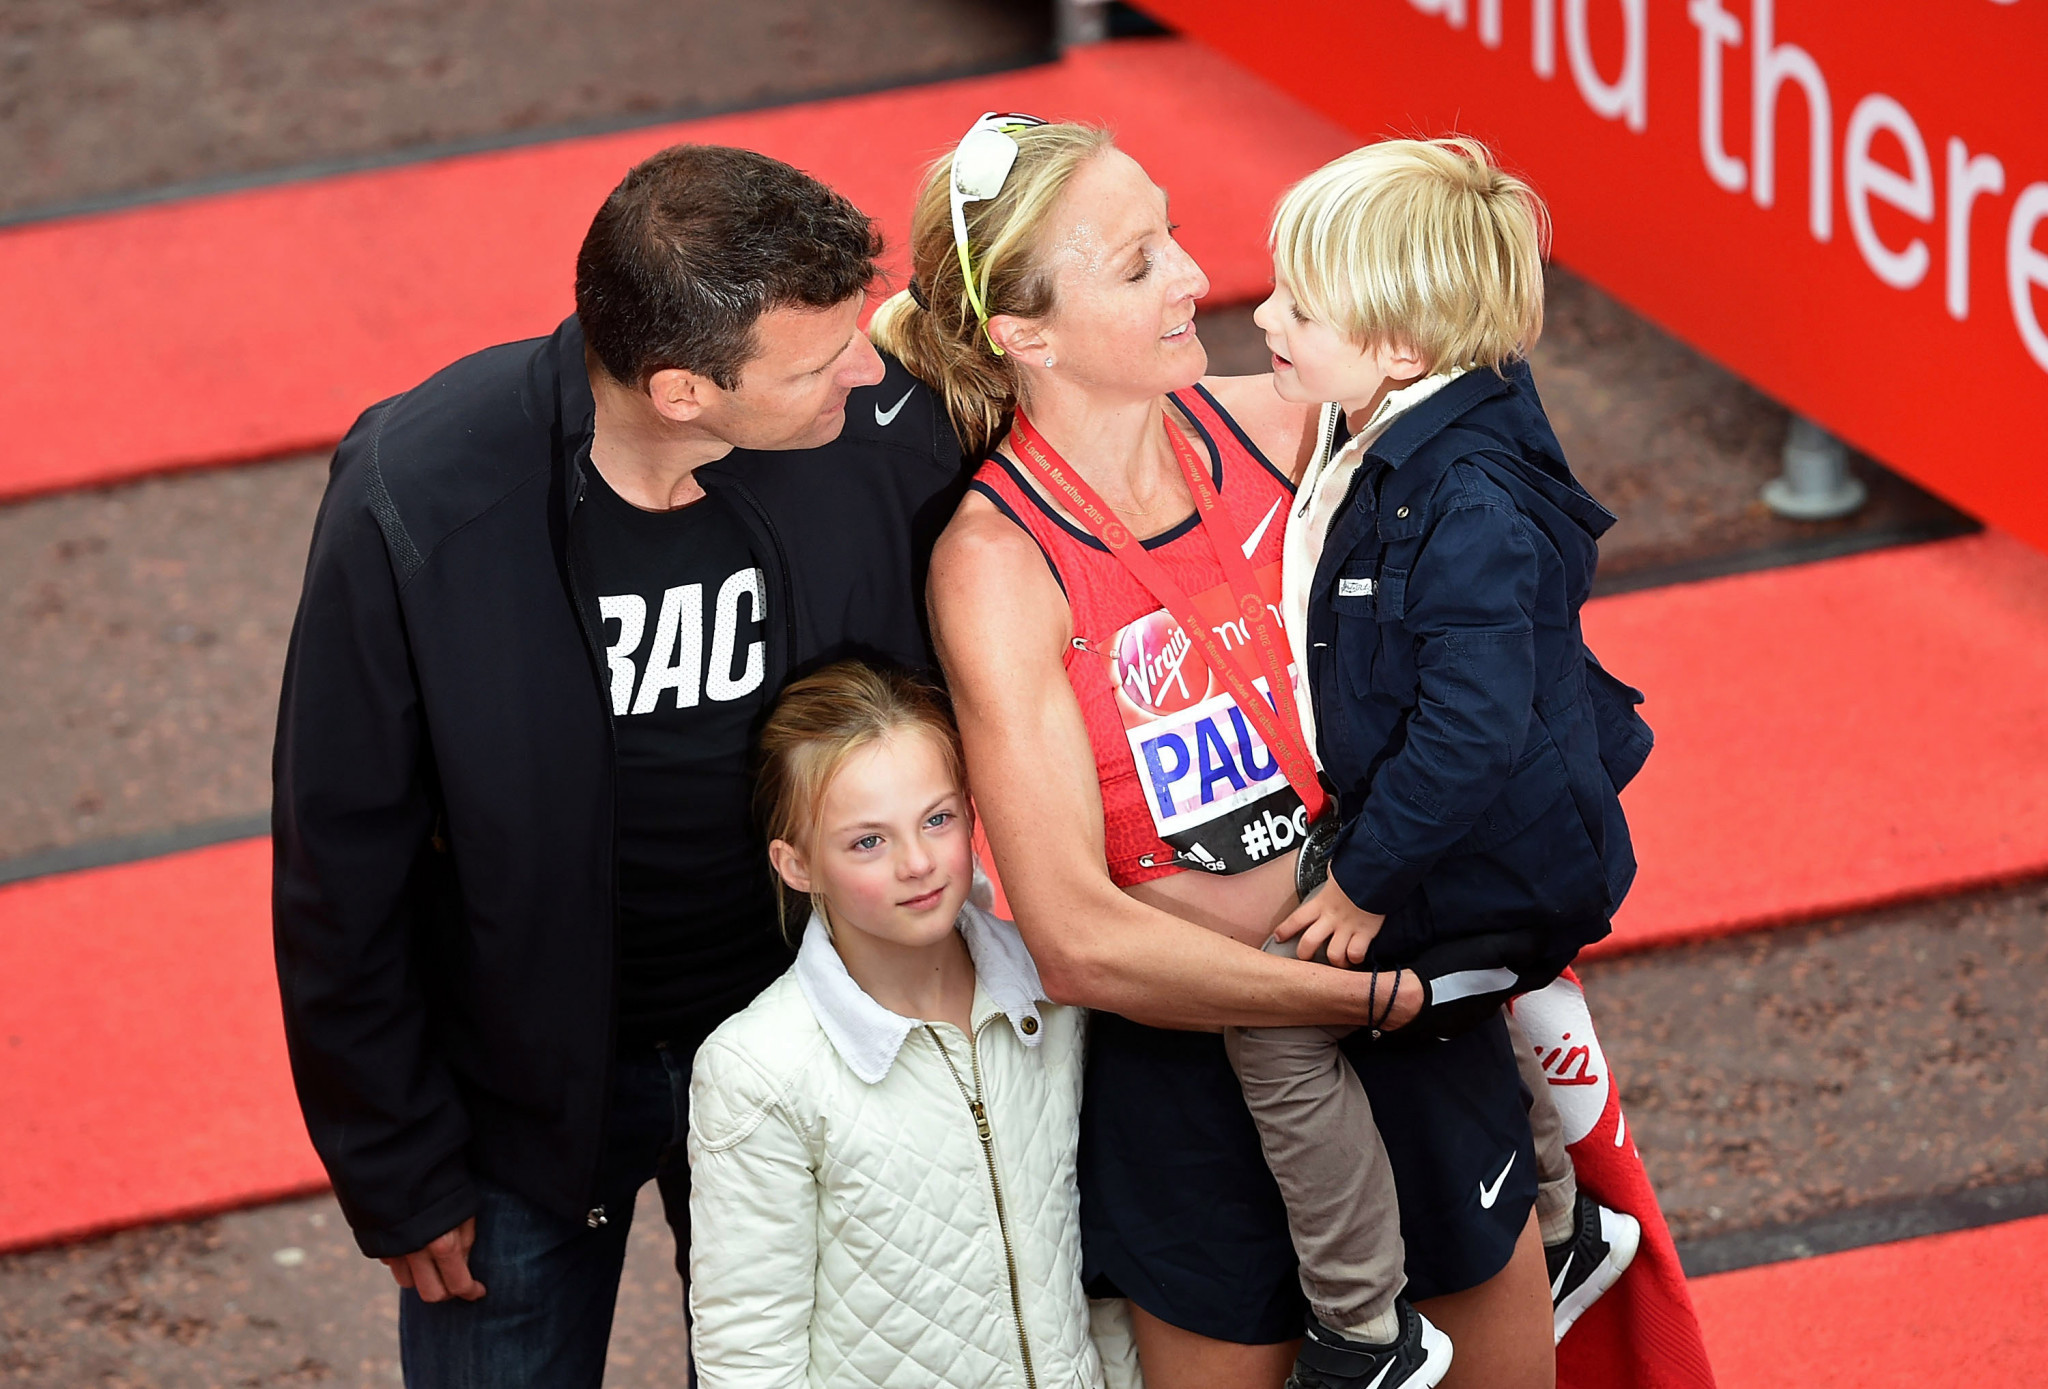 Gary Lough, left, with wife Paula Radcliffe and their two children after the 2015 London Marathon ©Getty Images